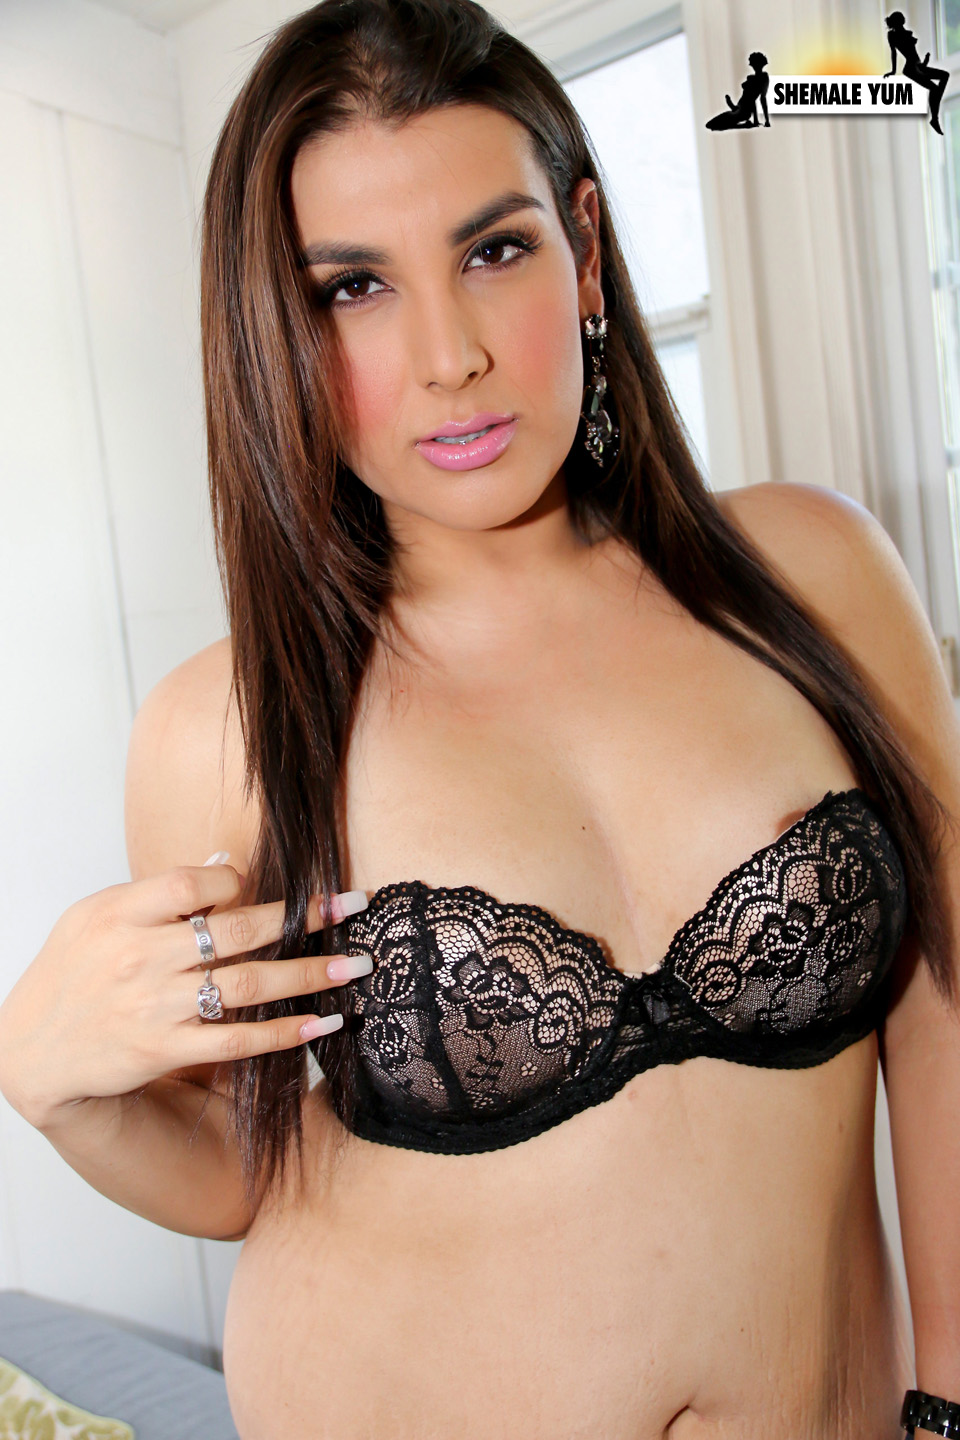 Quijada recommends Shemale with huge cock pics